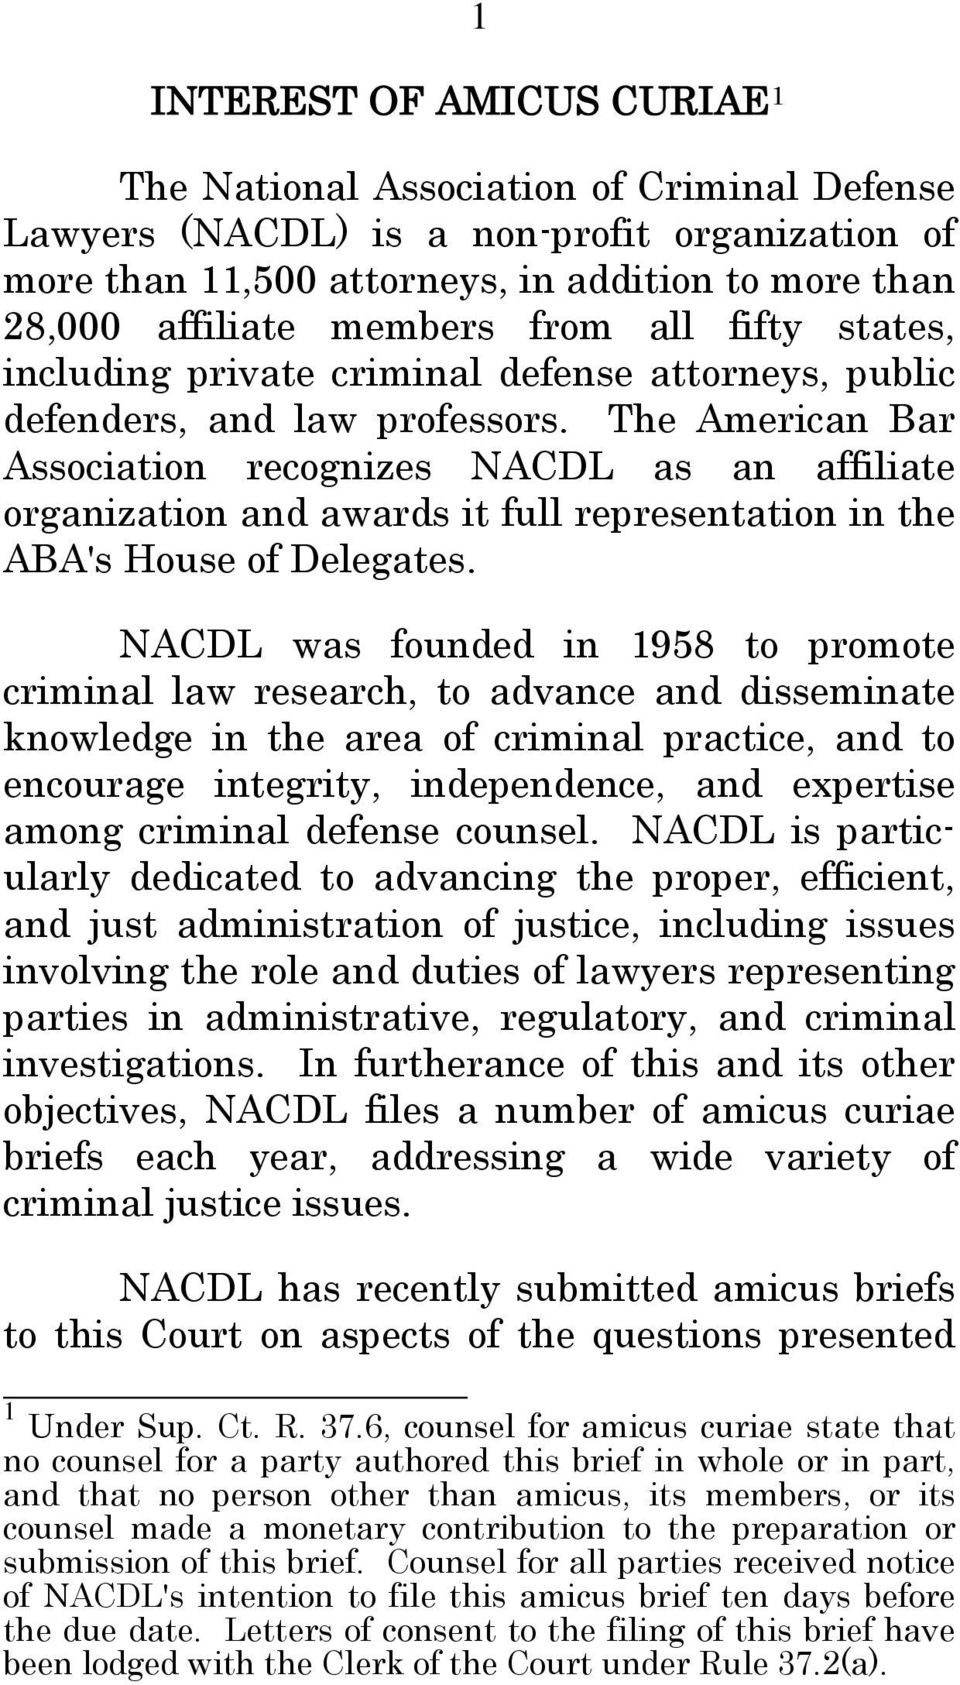 The American Bar Association recognizes NACDL as an affiliate organization and awards it full representation in the ABA's House of Delegates.